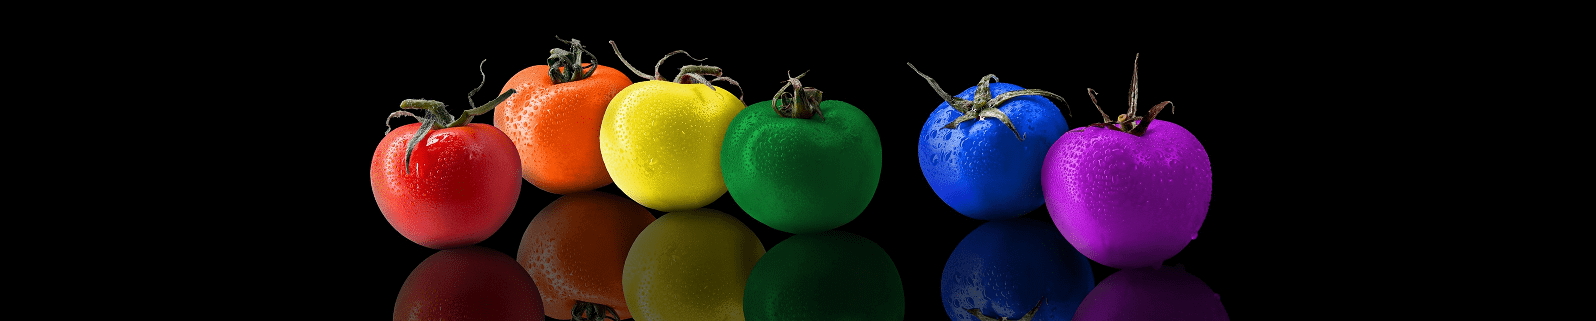 Intro banner - colored tomatoes